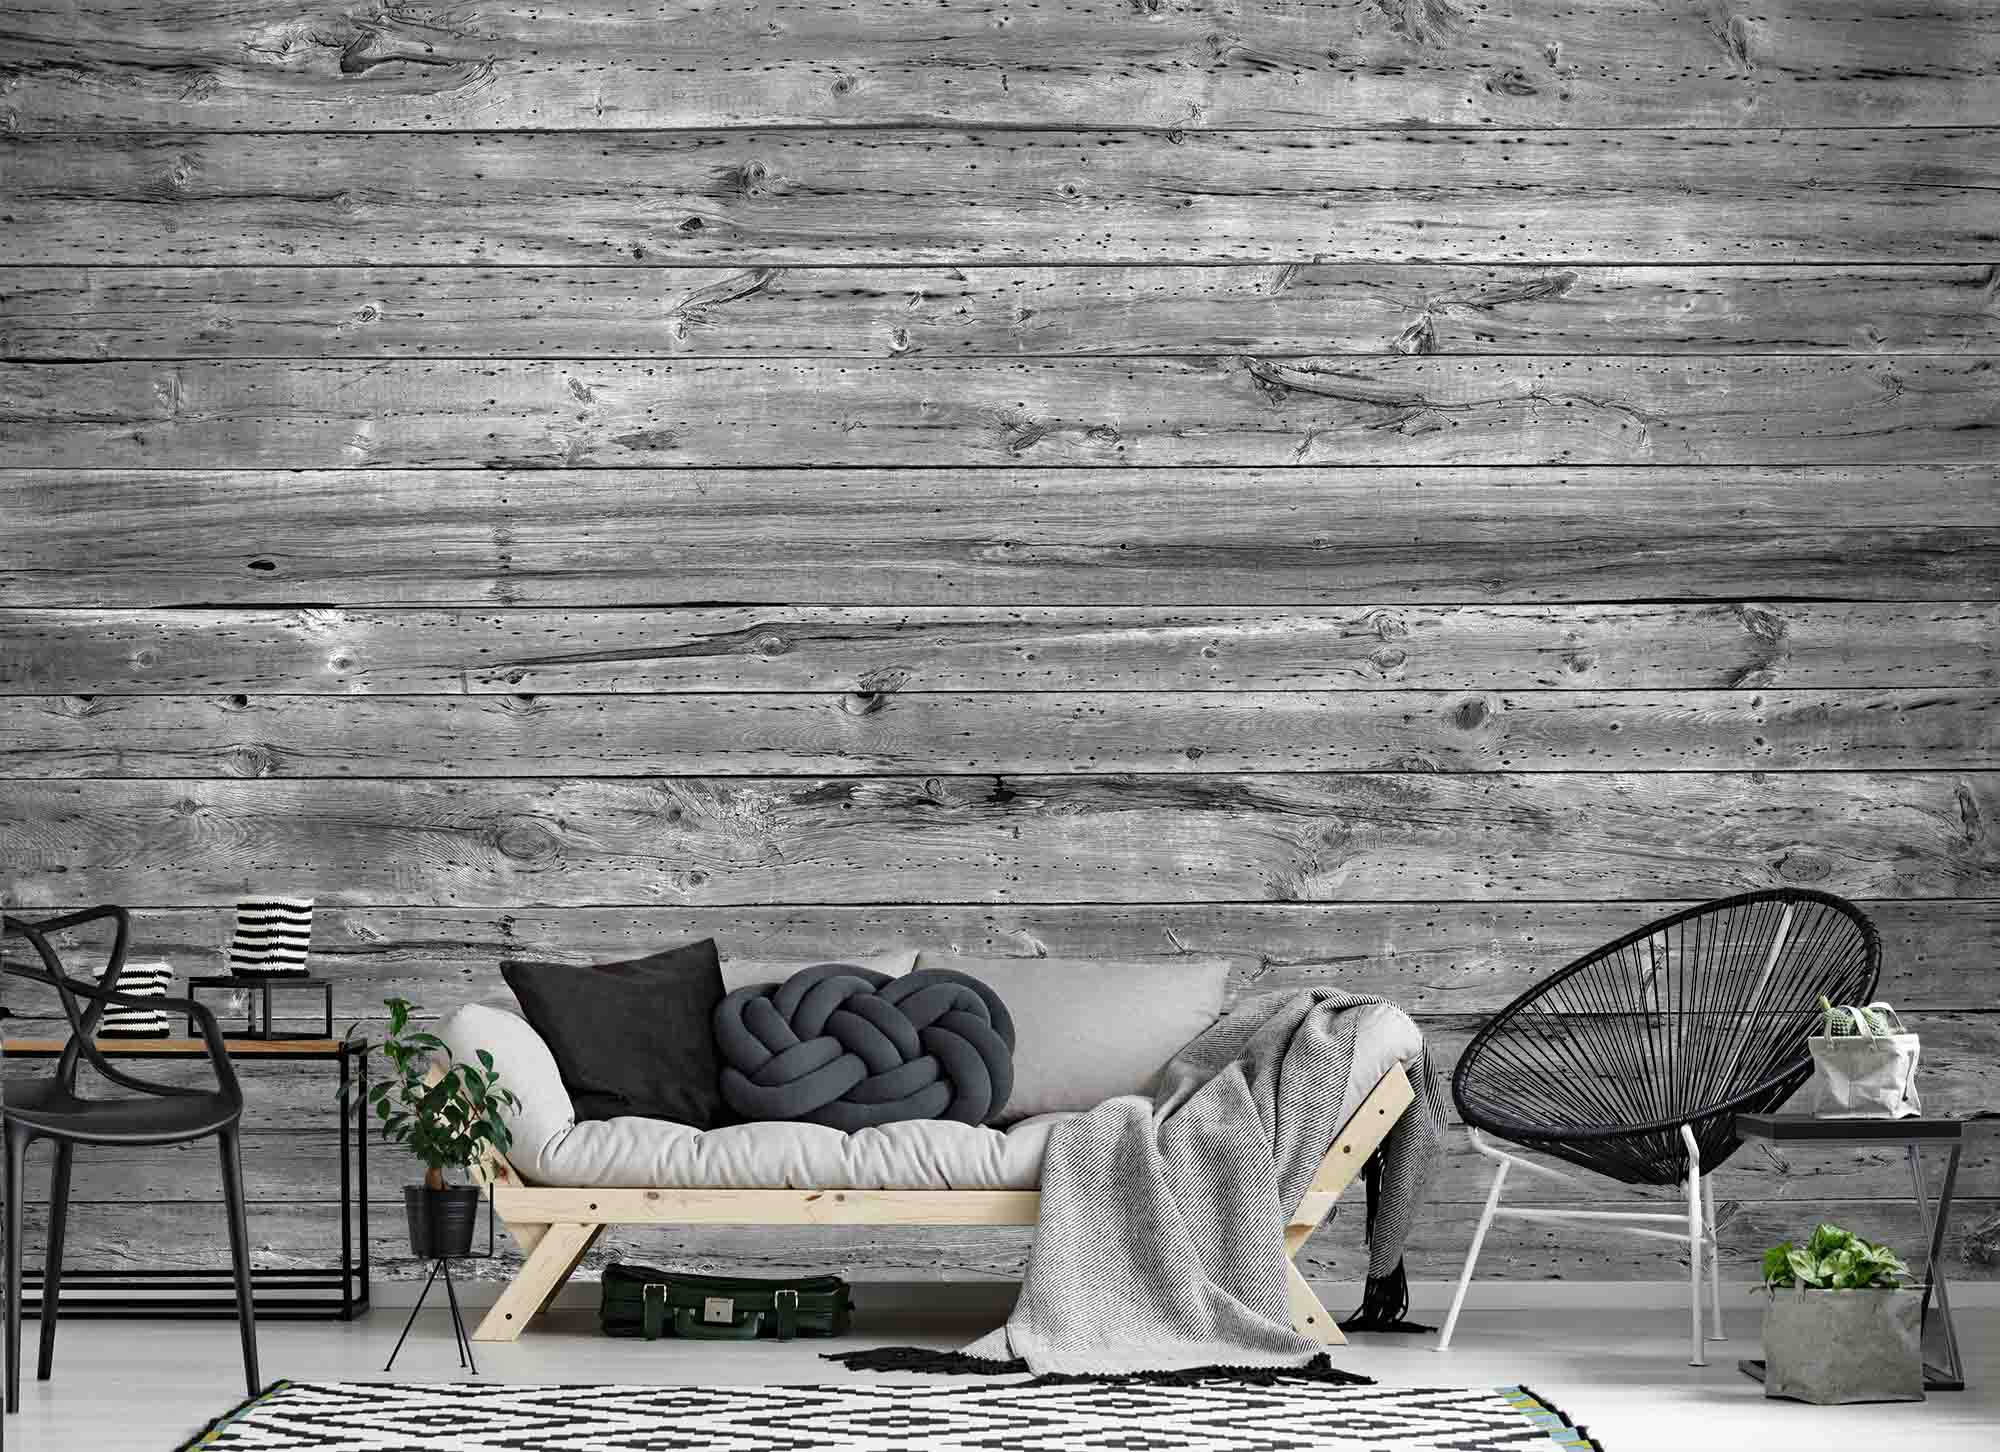 Wallpaper Mural Horizontal Old Barn Wood Black And White Muralunique